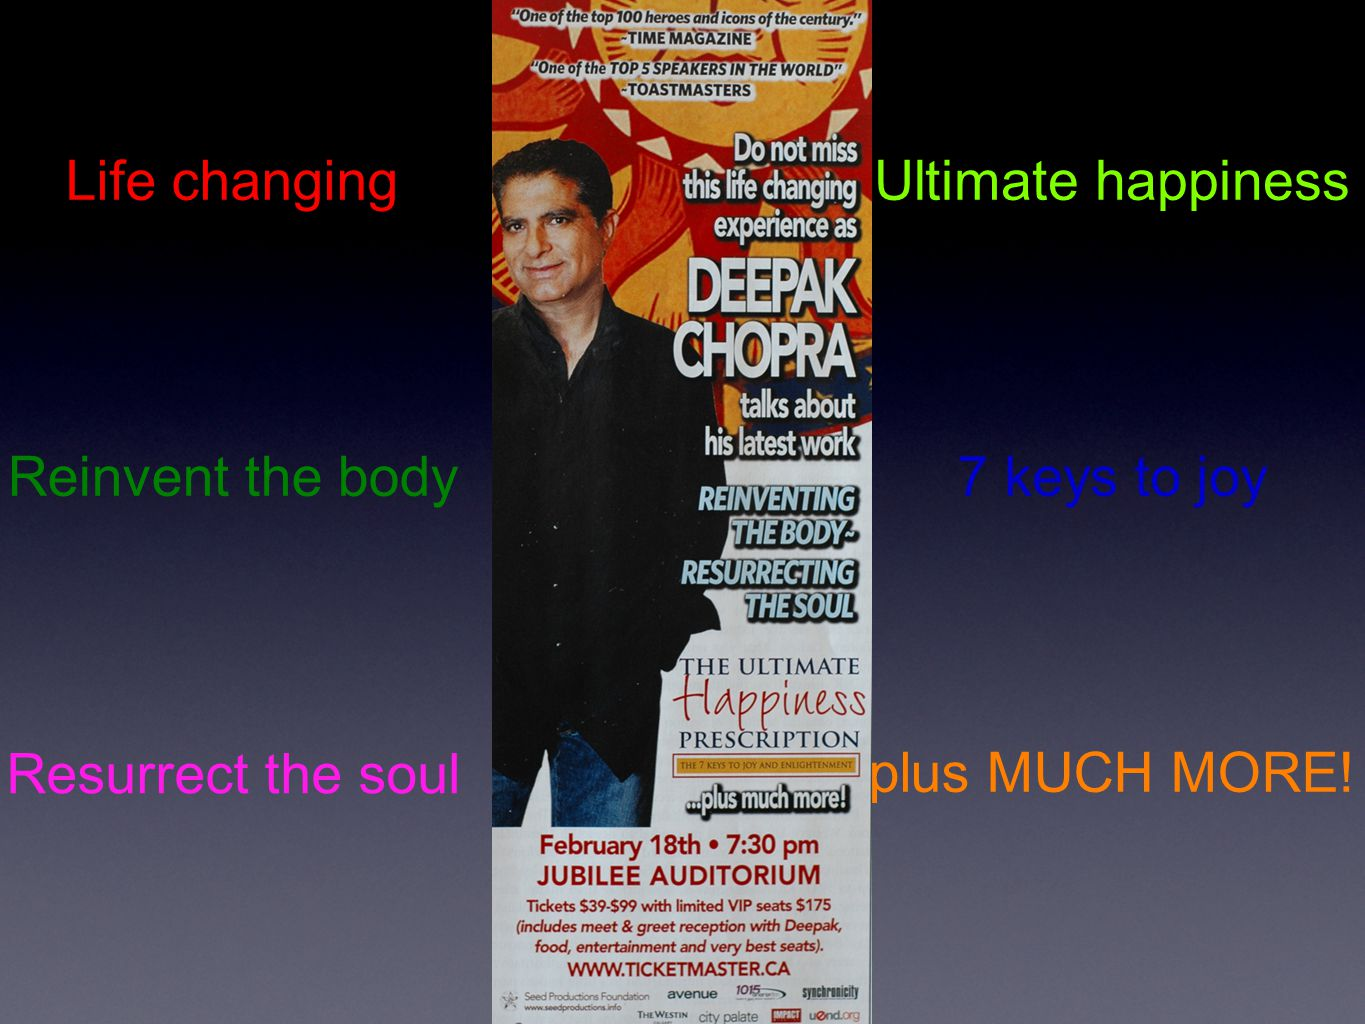 Life changing Reinvent the body Resurrect the soul Ultimate happiness 7 keys to joy plus MUCH MORE!